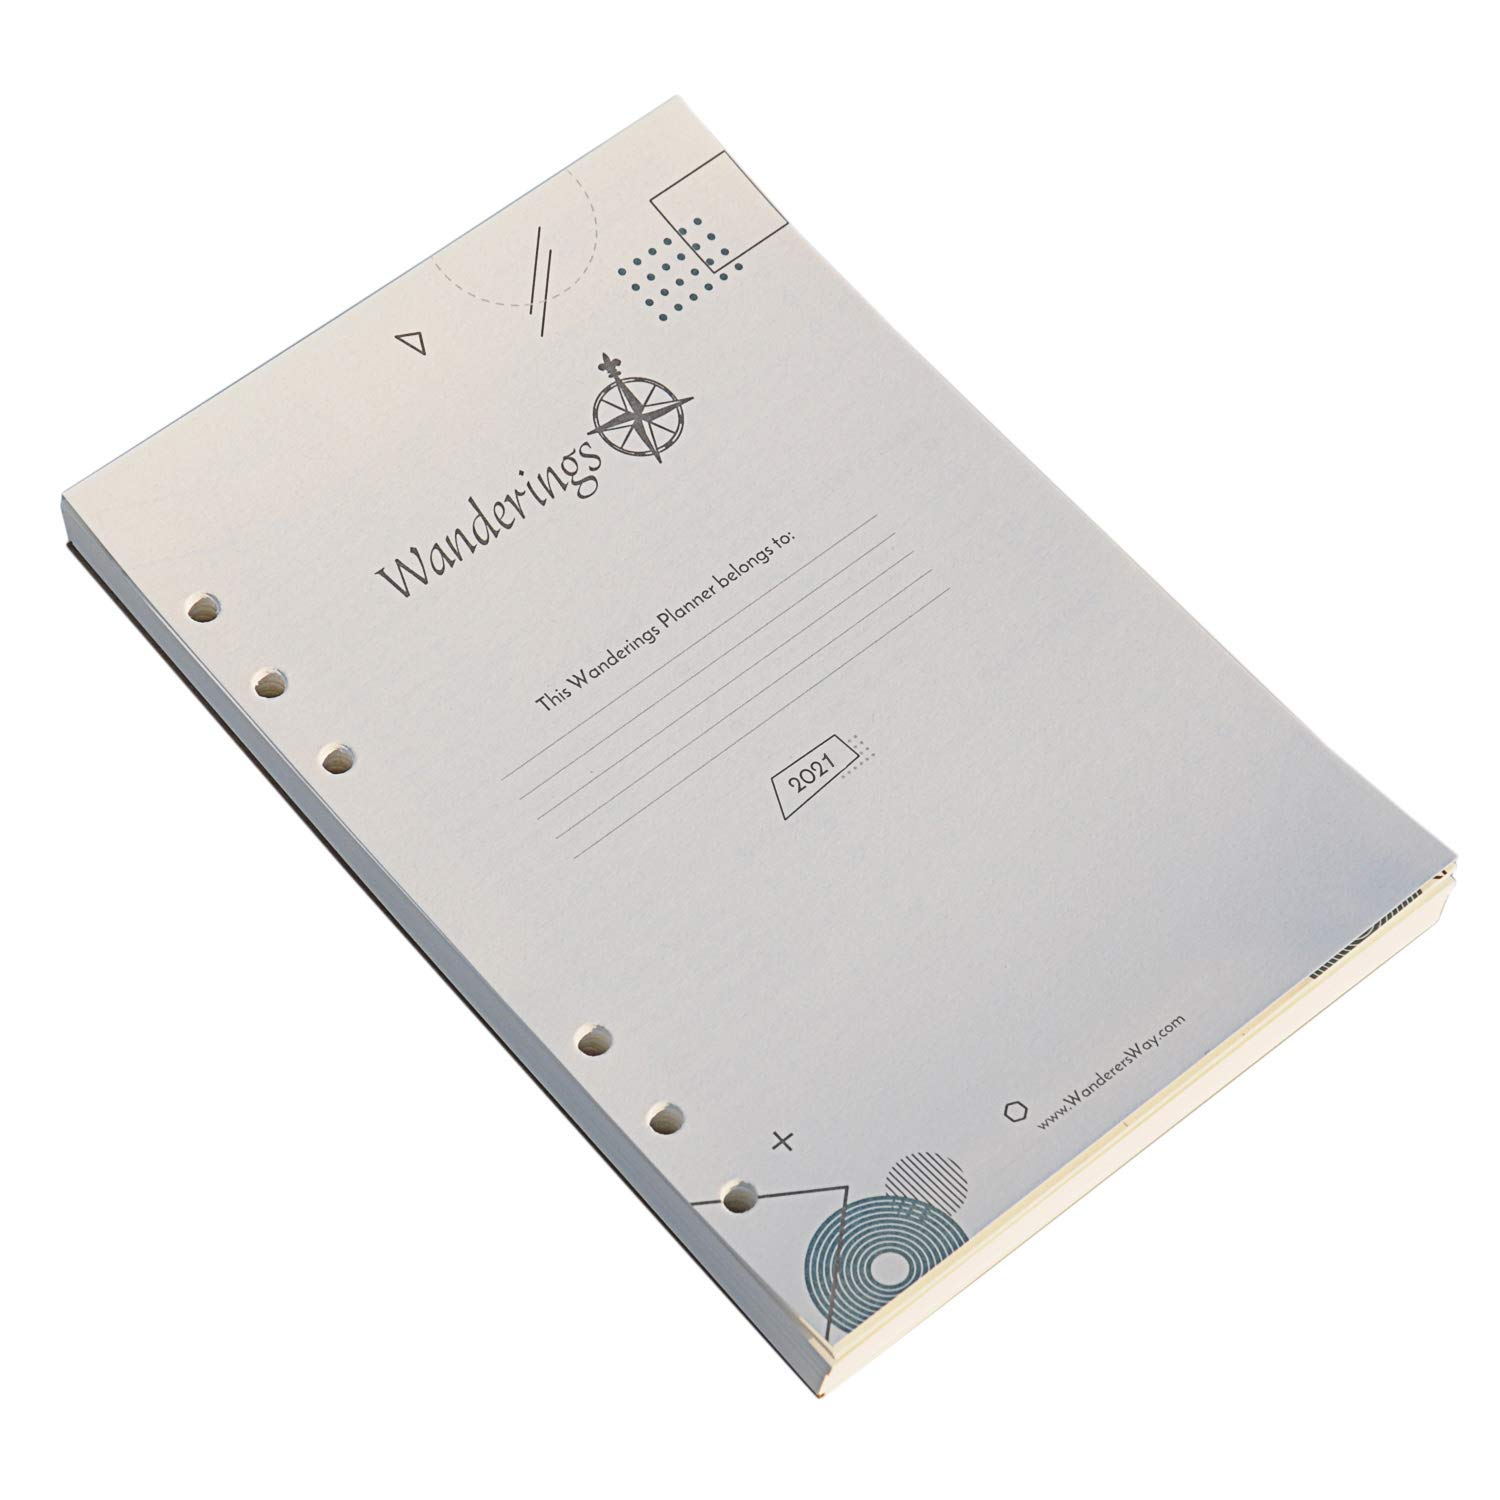 Jan 2021-Dec 2021 2021 Weekly /& Monthly Diary Refill 5-1//2 x 8-1//2 2021 Diary Refill A5 Diary Inserts Loose Leaf paper 6-Hole Punched Refill Paper 2021 with Eye-Catching Cover